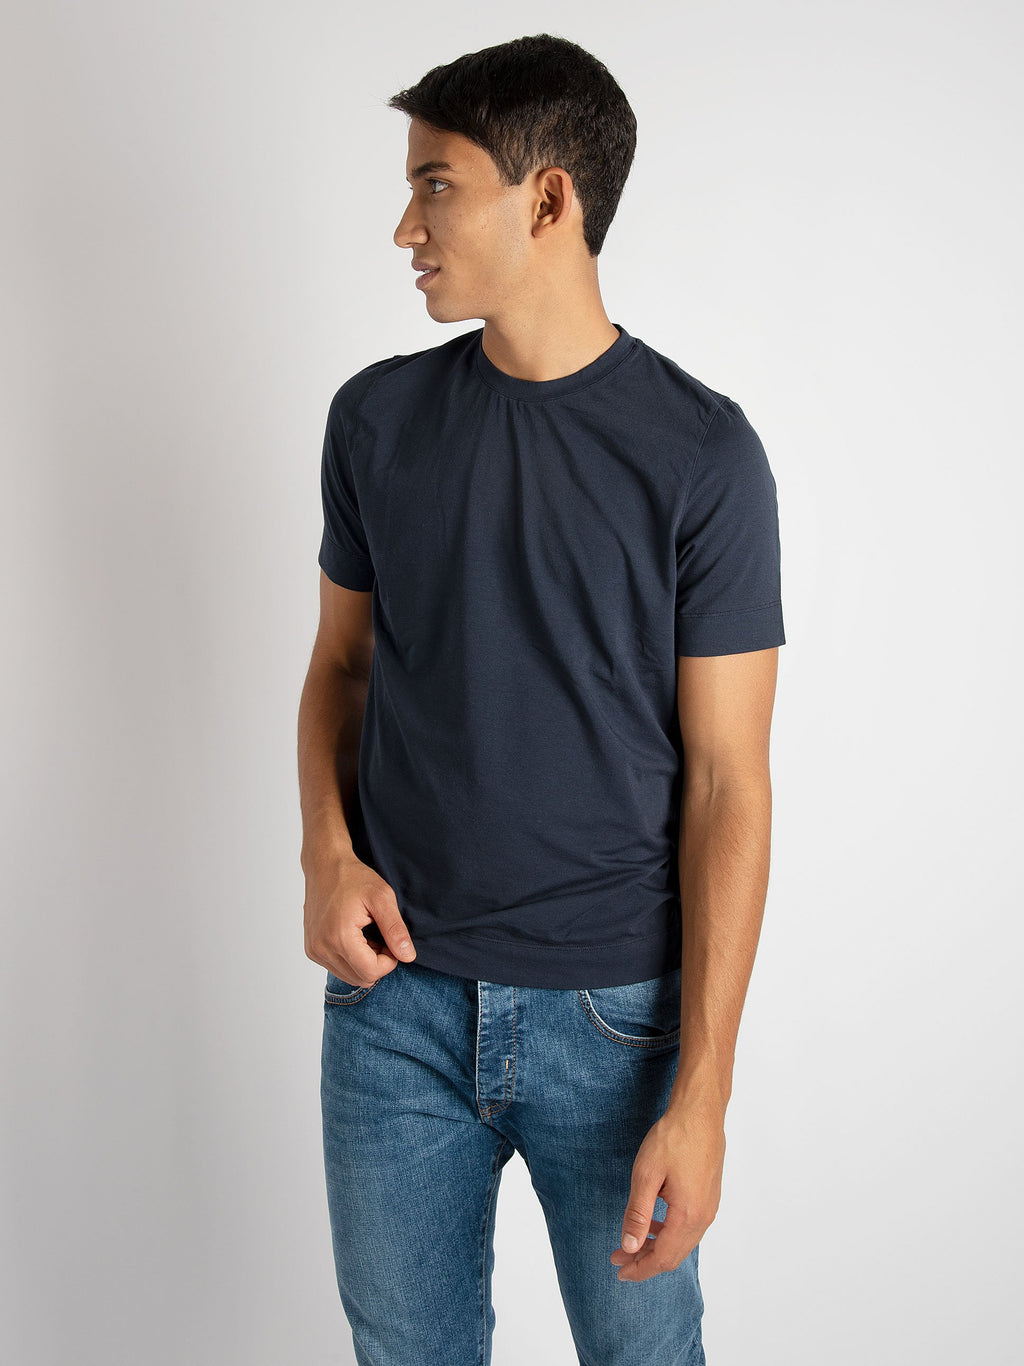 T-shirt 'Felpina' - Navy